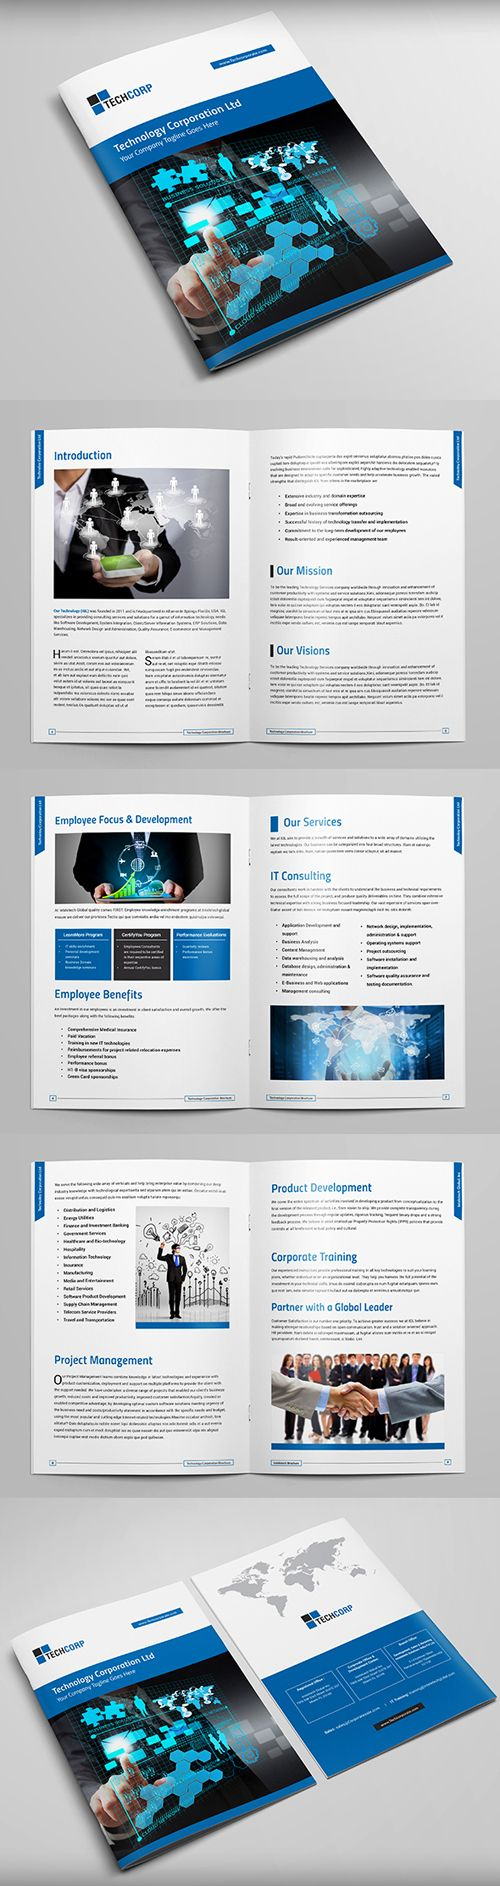 Download Technology brochure templates and designs! We have the best collection of professional templates, graphics and designs.Technology Brochure Template